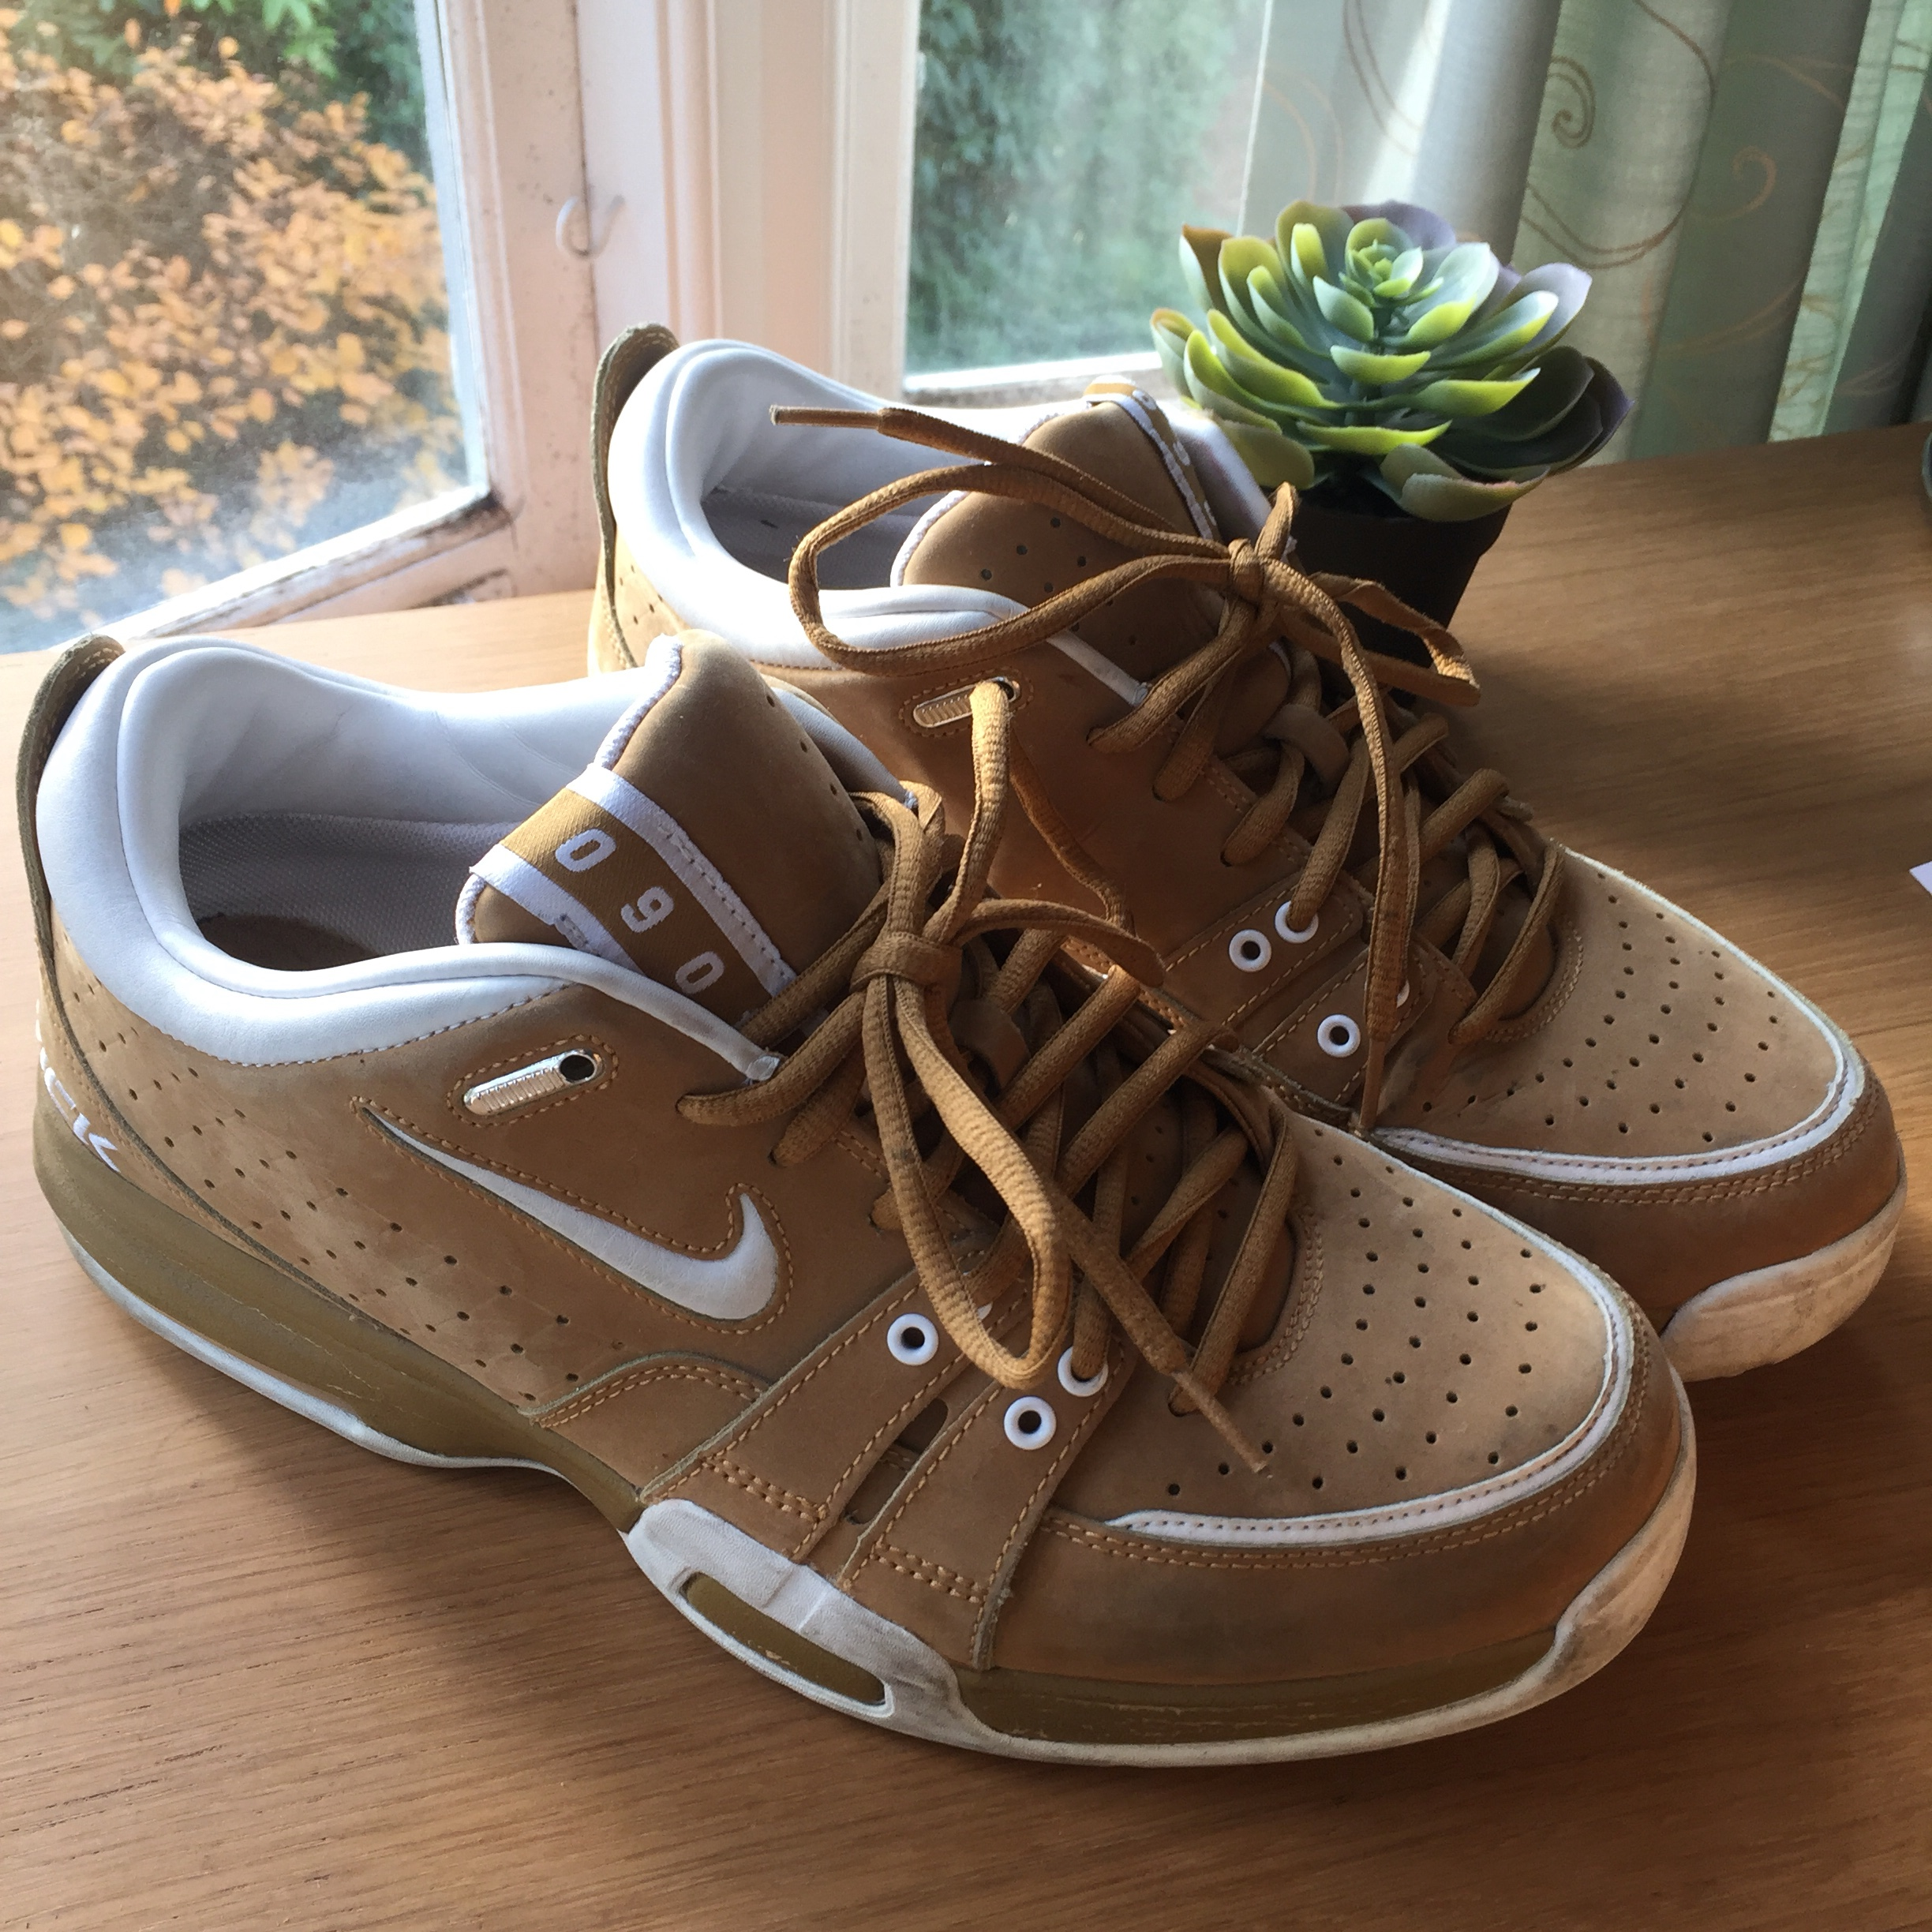 Vintage DEADSTOCK retro Nike Vick trainers in brown